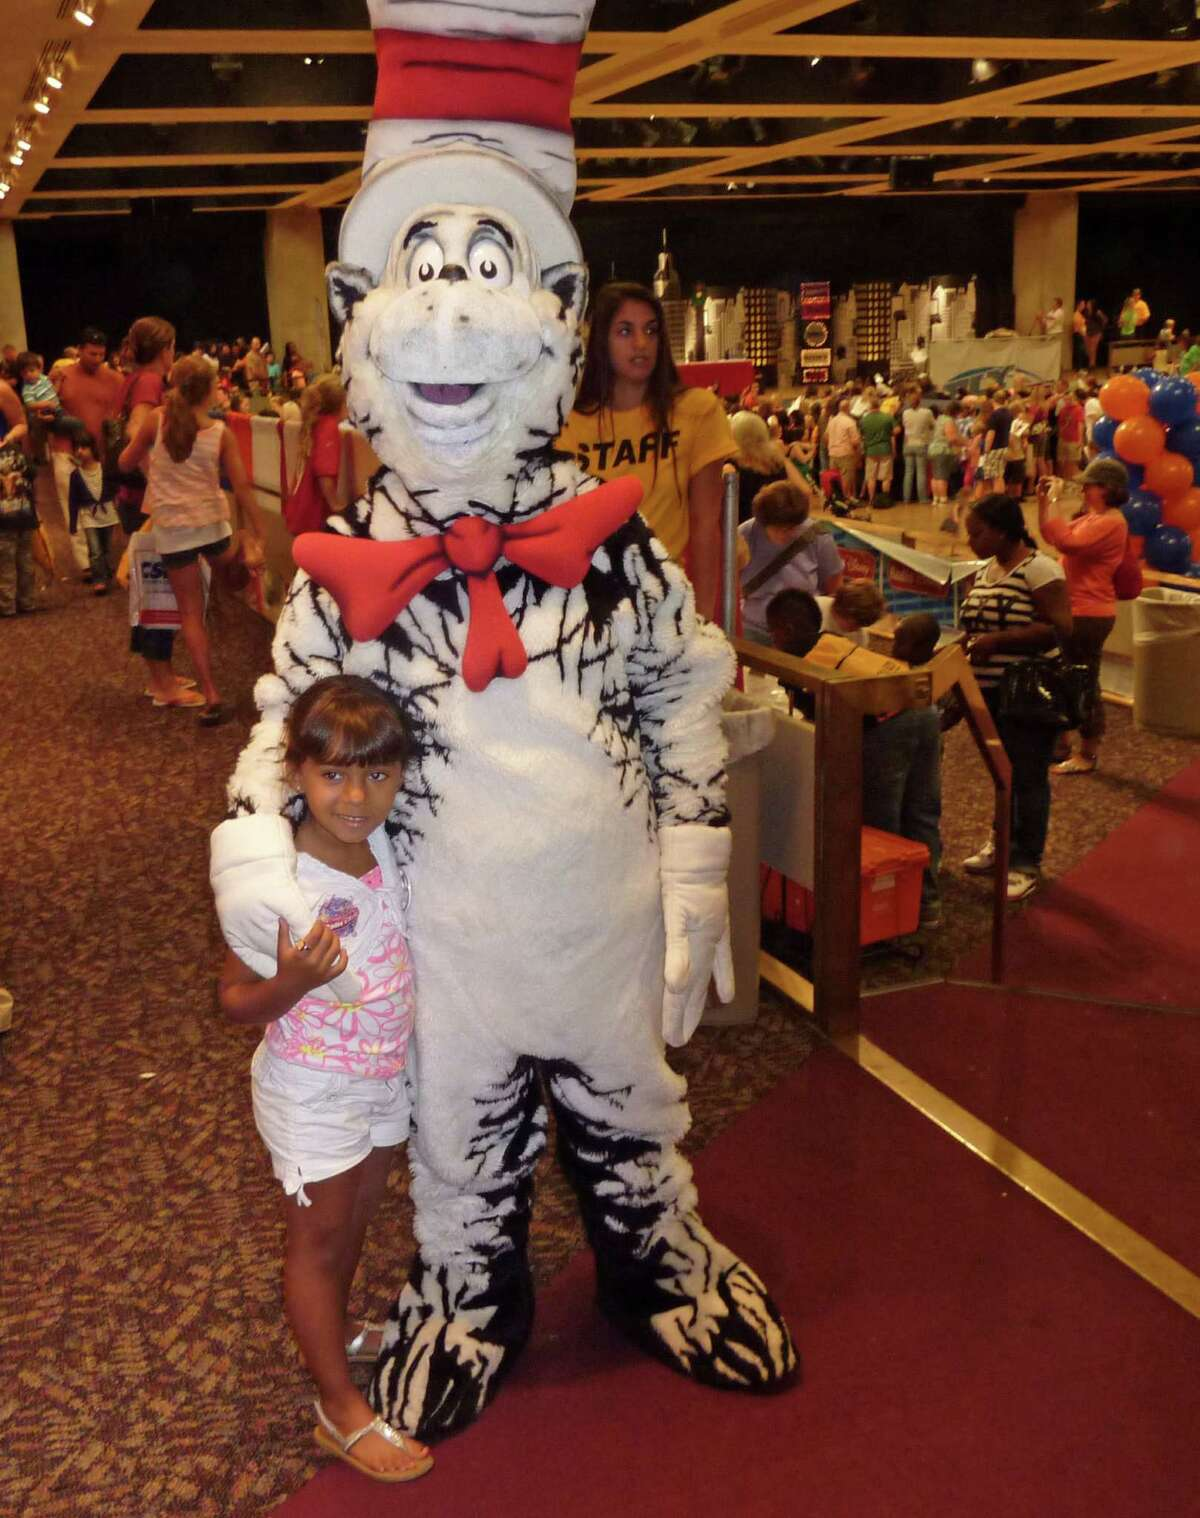 Kayee Hudson poses with the Cat in the Hat. 2012 Back to School Expo at the Empire State Plaza. Photo by Geoffrey Flynn.